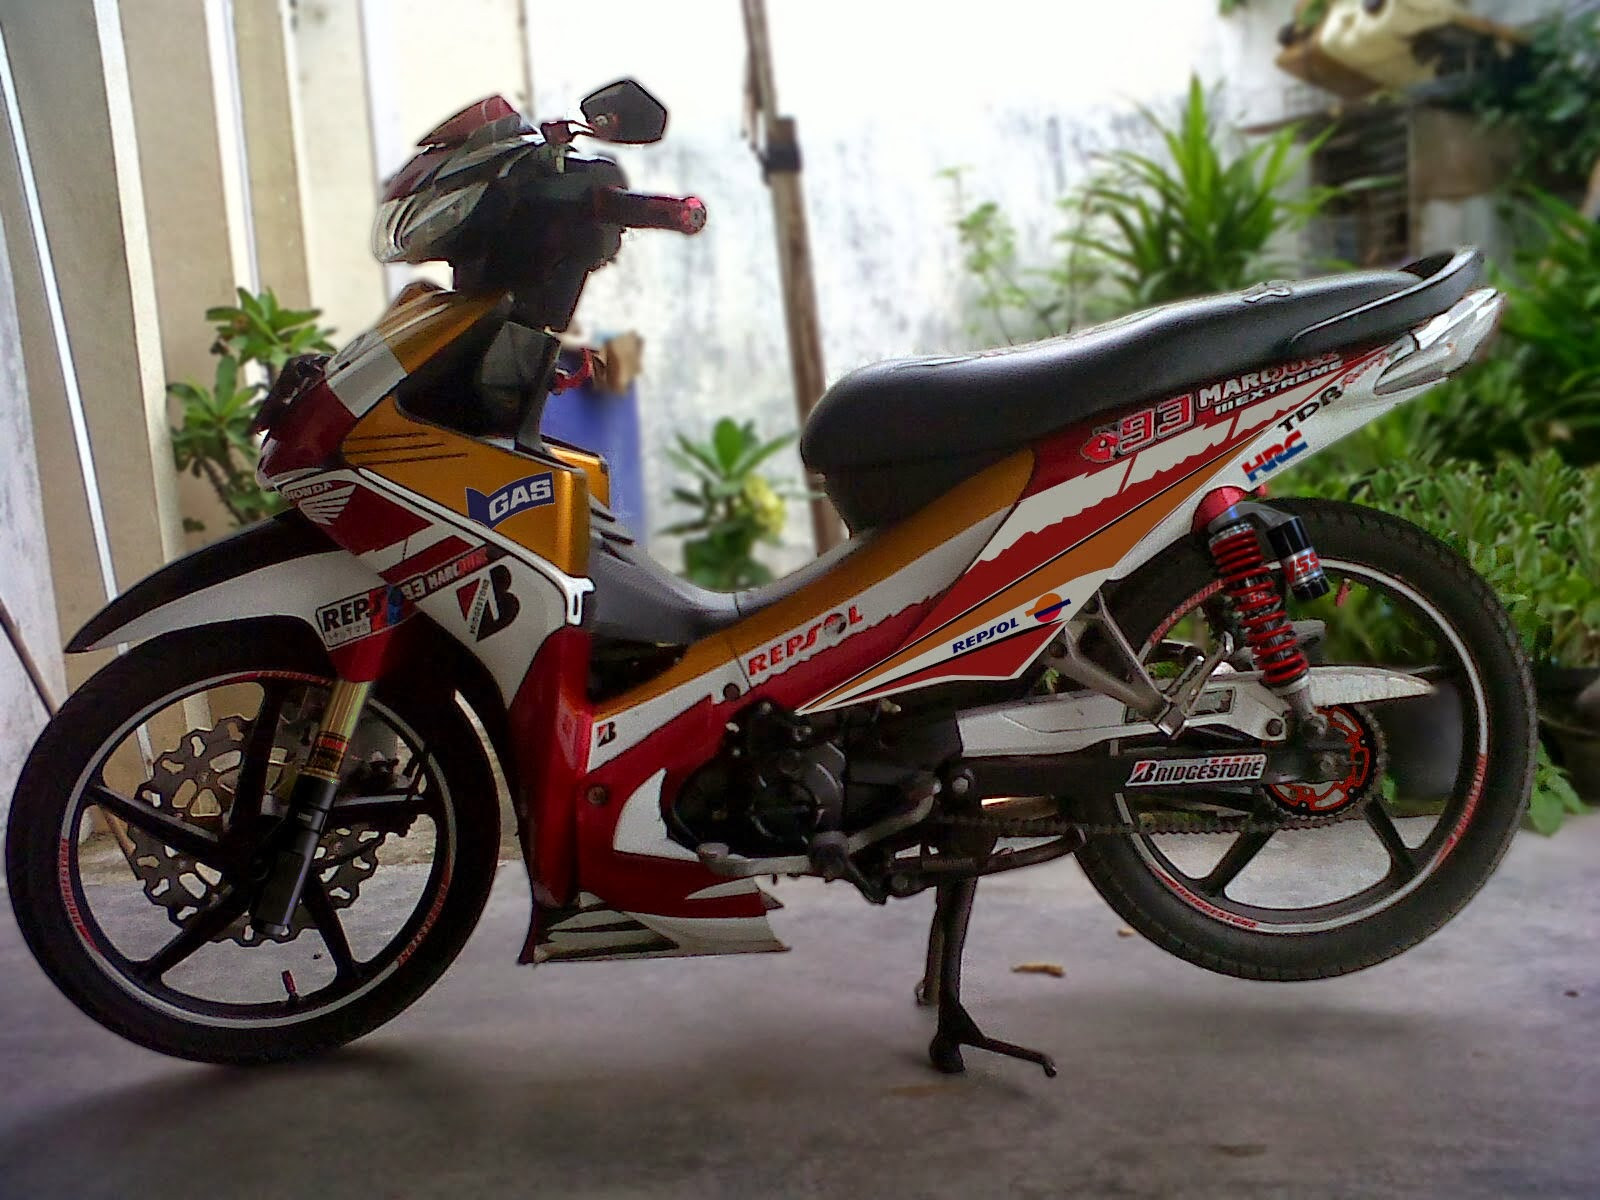 Koleksi Modifikasi Motor Supra Fit 110 Cc Terbaru Palm Modifikasi